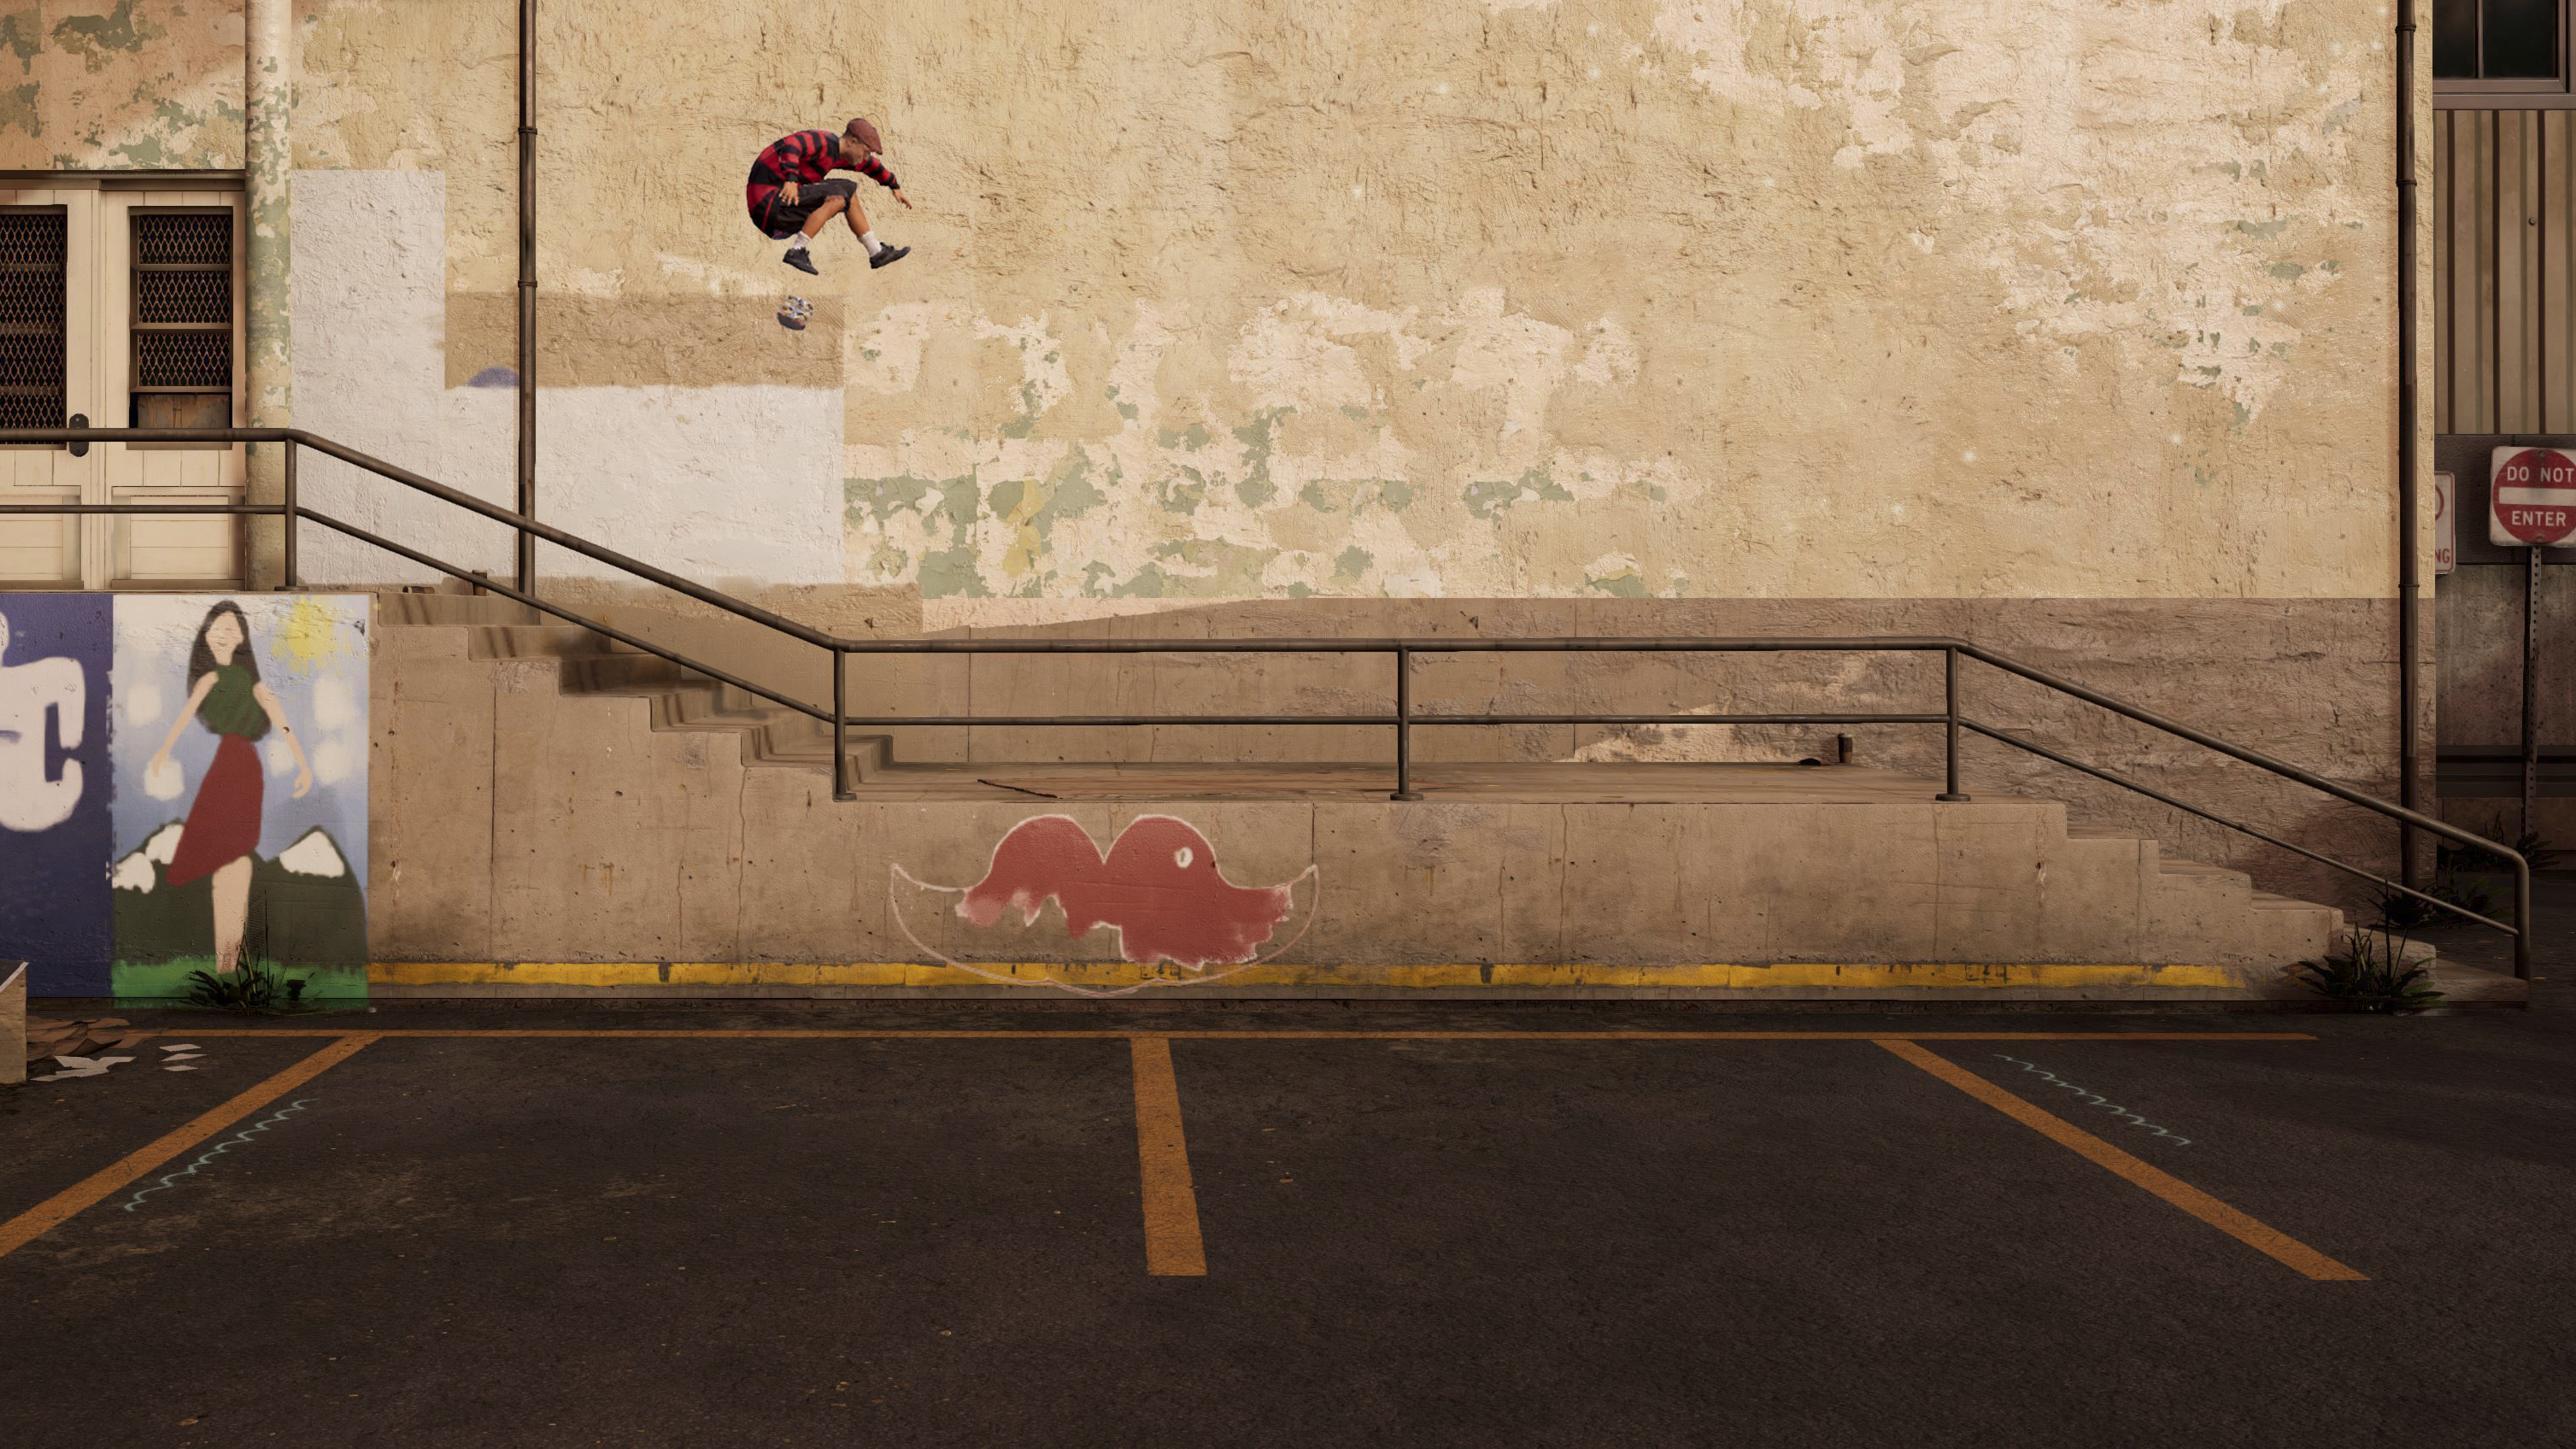 Tony Hawk's Pro Skater 1 + 2 - Gallery Screenshot 8